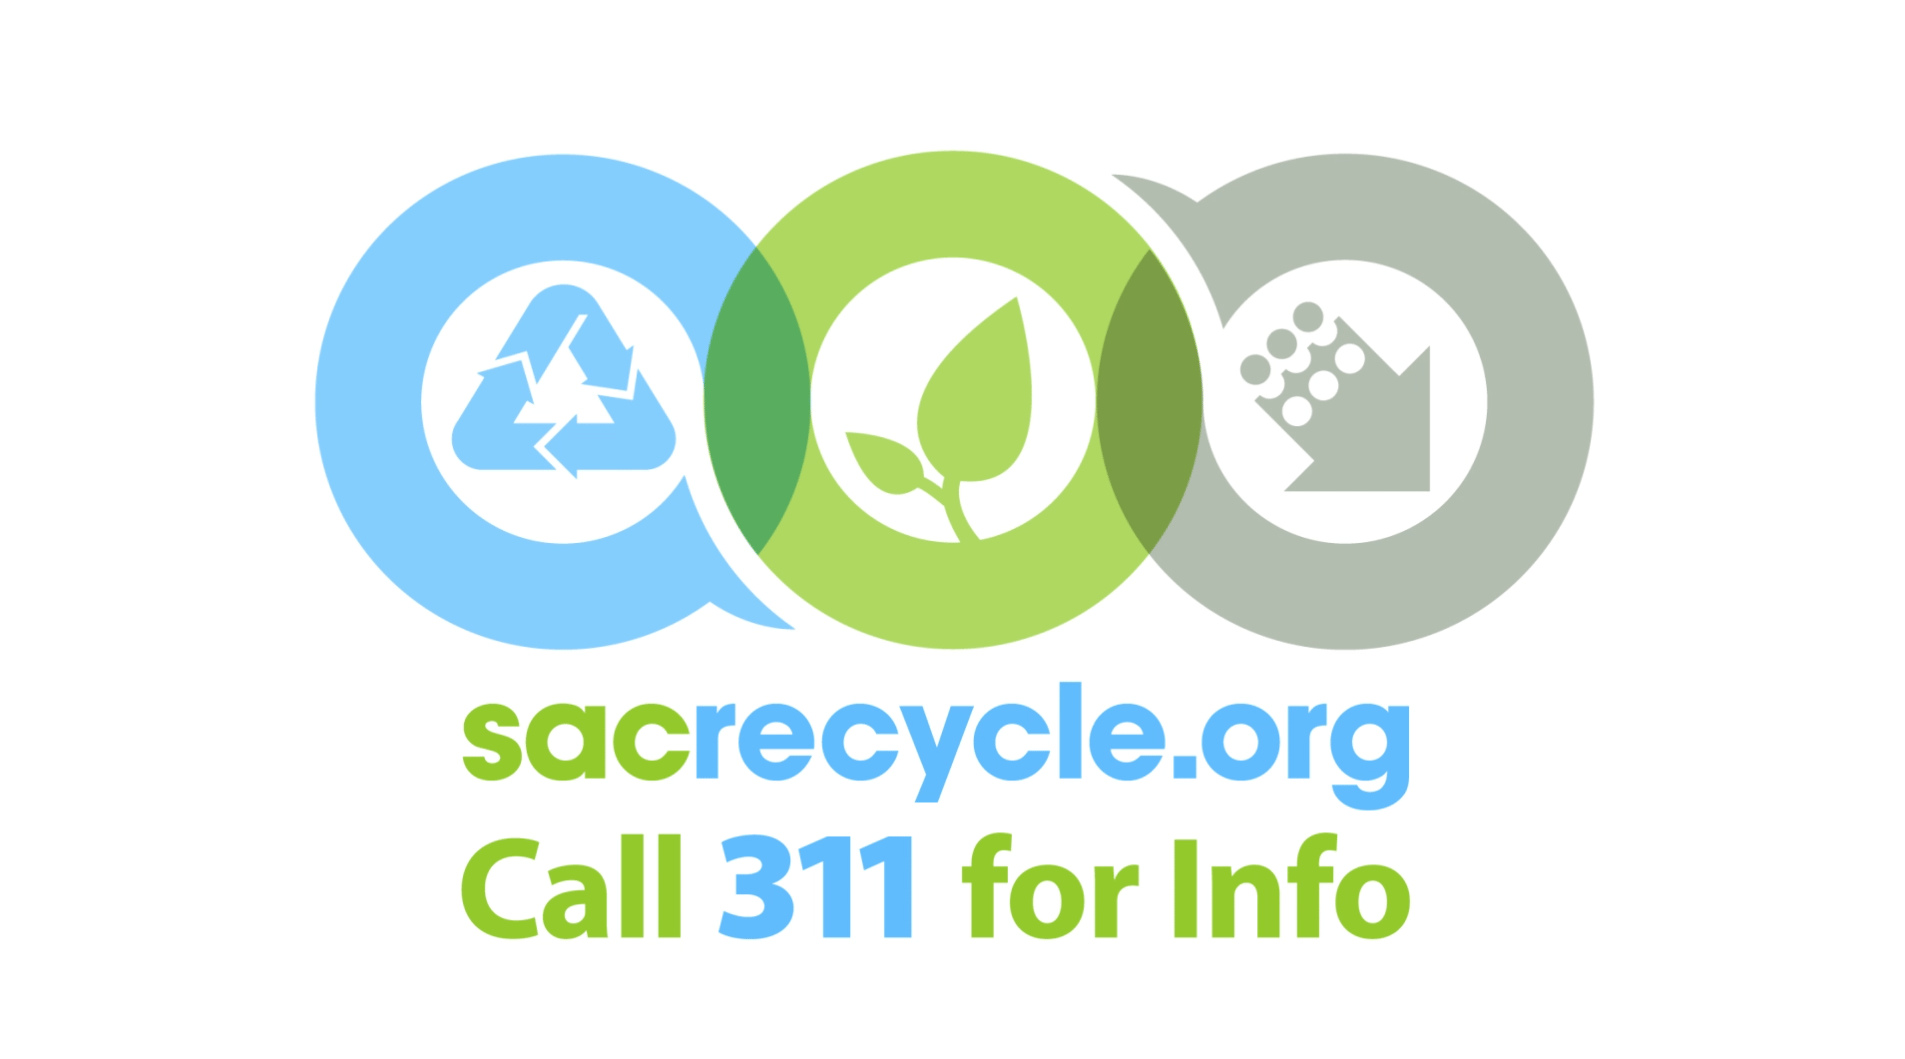 Sacrecylce.org Call 311 For Info Graphic With Recycle Leaf And Array On Top As Our Favorite Projects From 2014